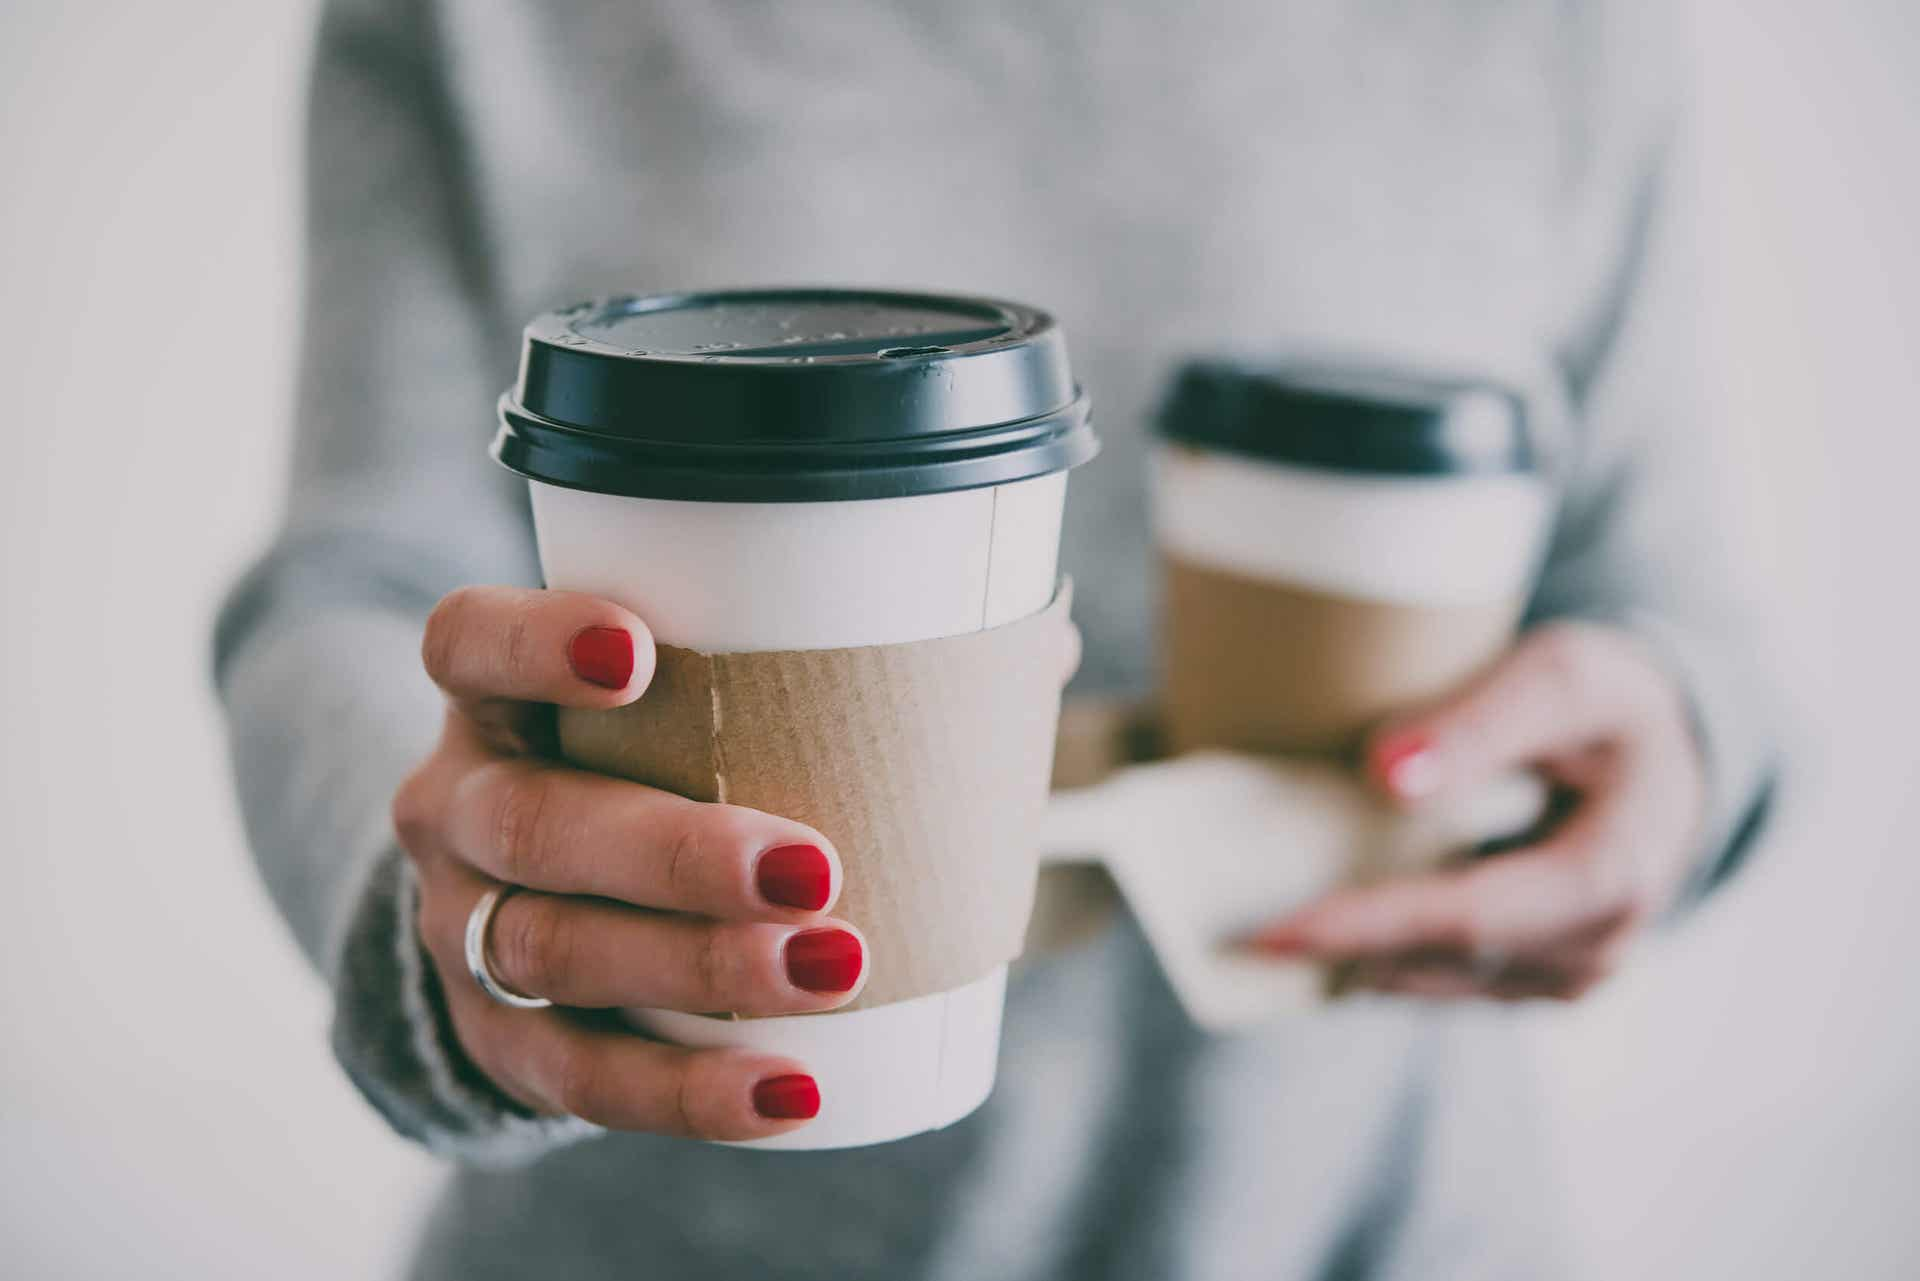 A woman holding two cups of coffee.